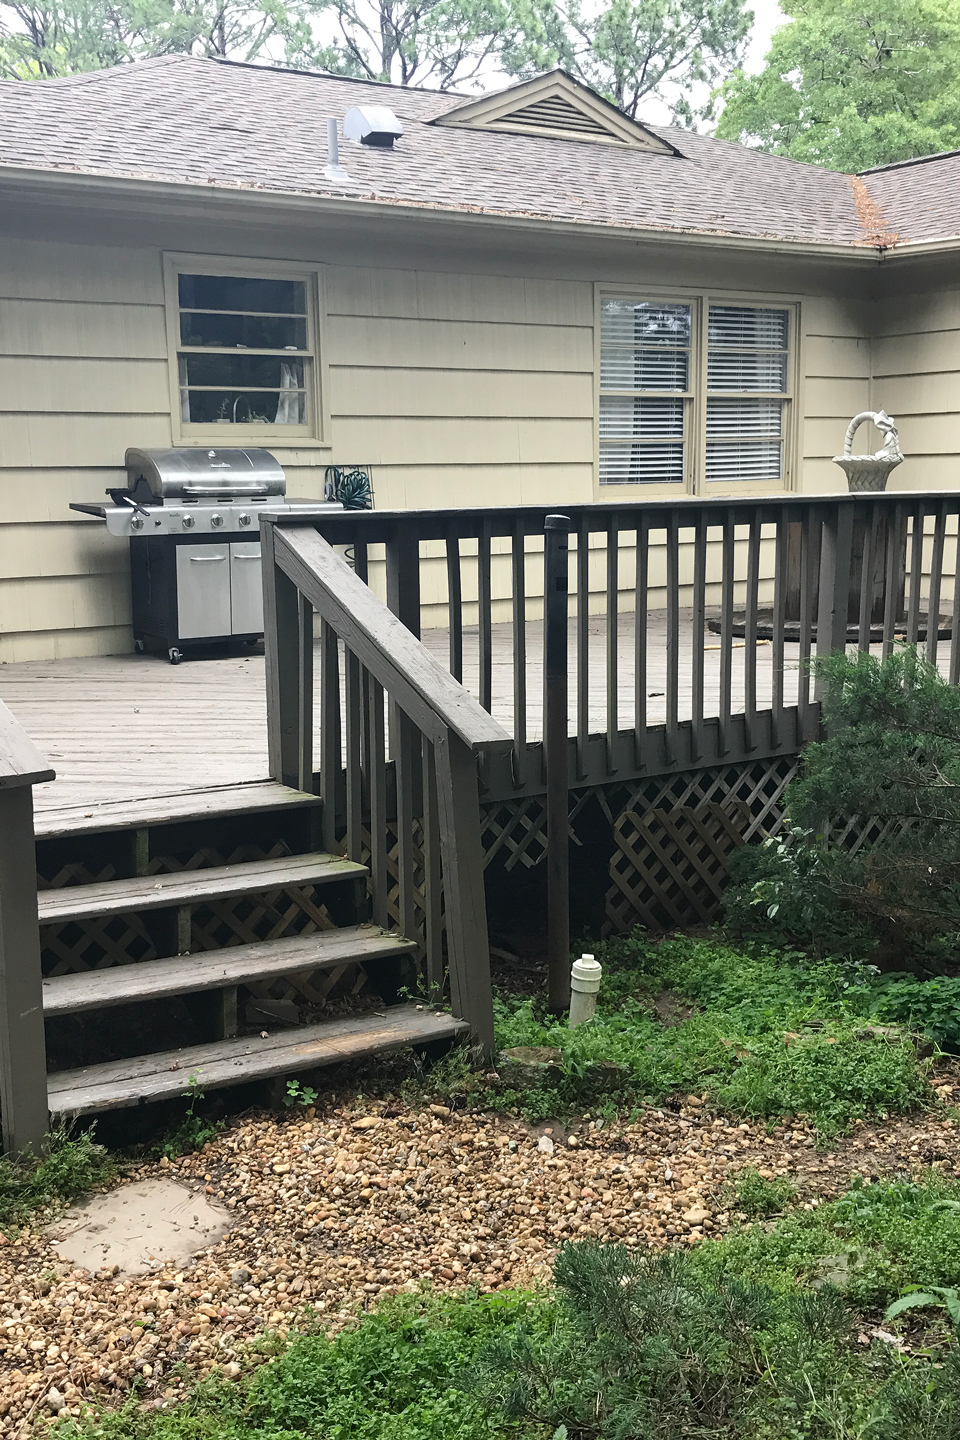 A before image of an old deck in a backyard